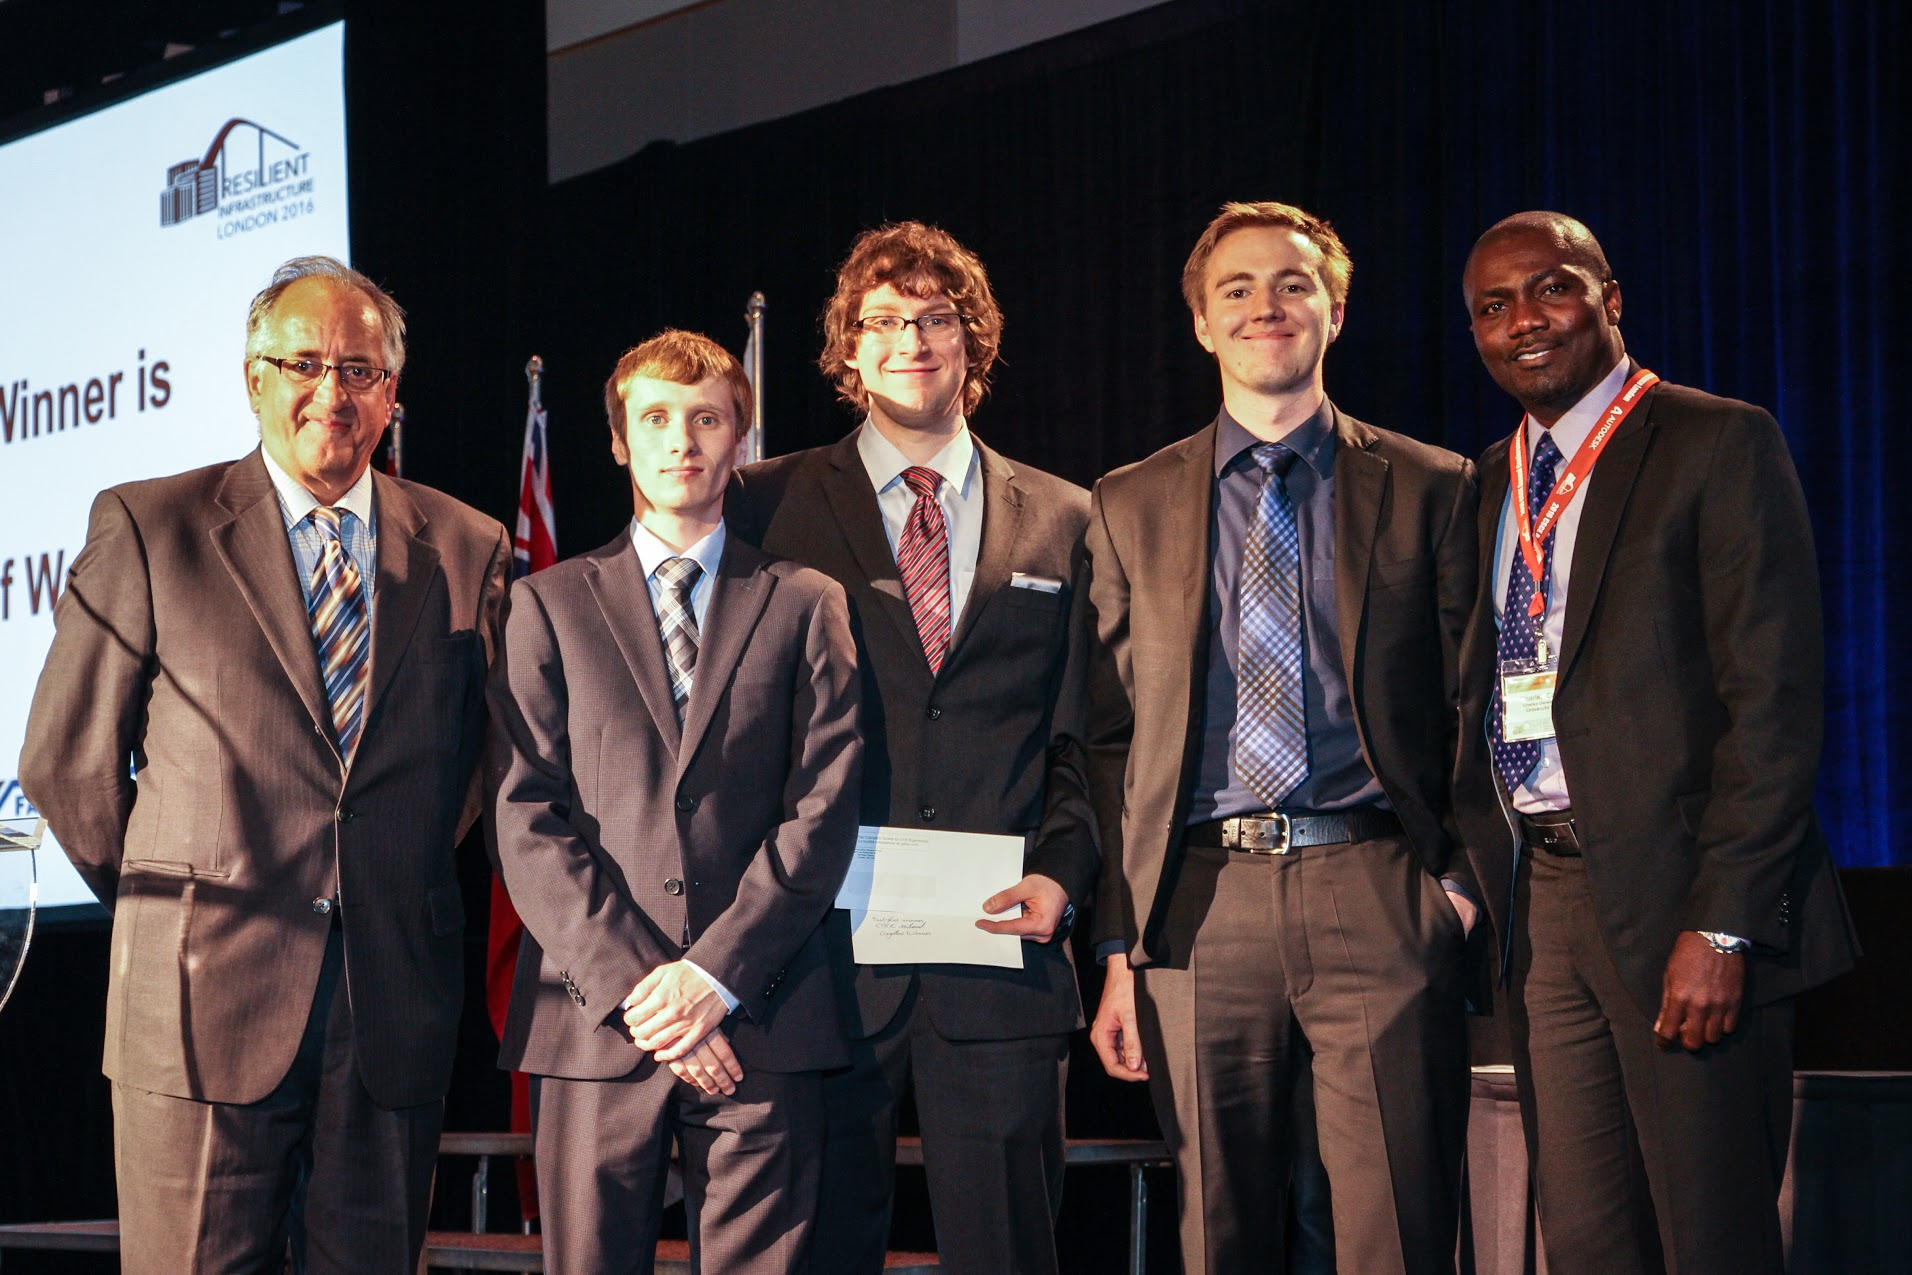 (left to right): Prof. Denis Beaulieu), James St Onge, Graeme Milligan, Stephen Phillips, and Prof. Charles Dar